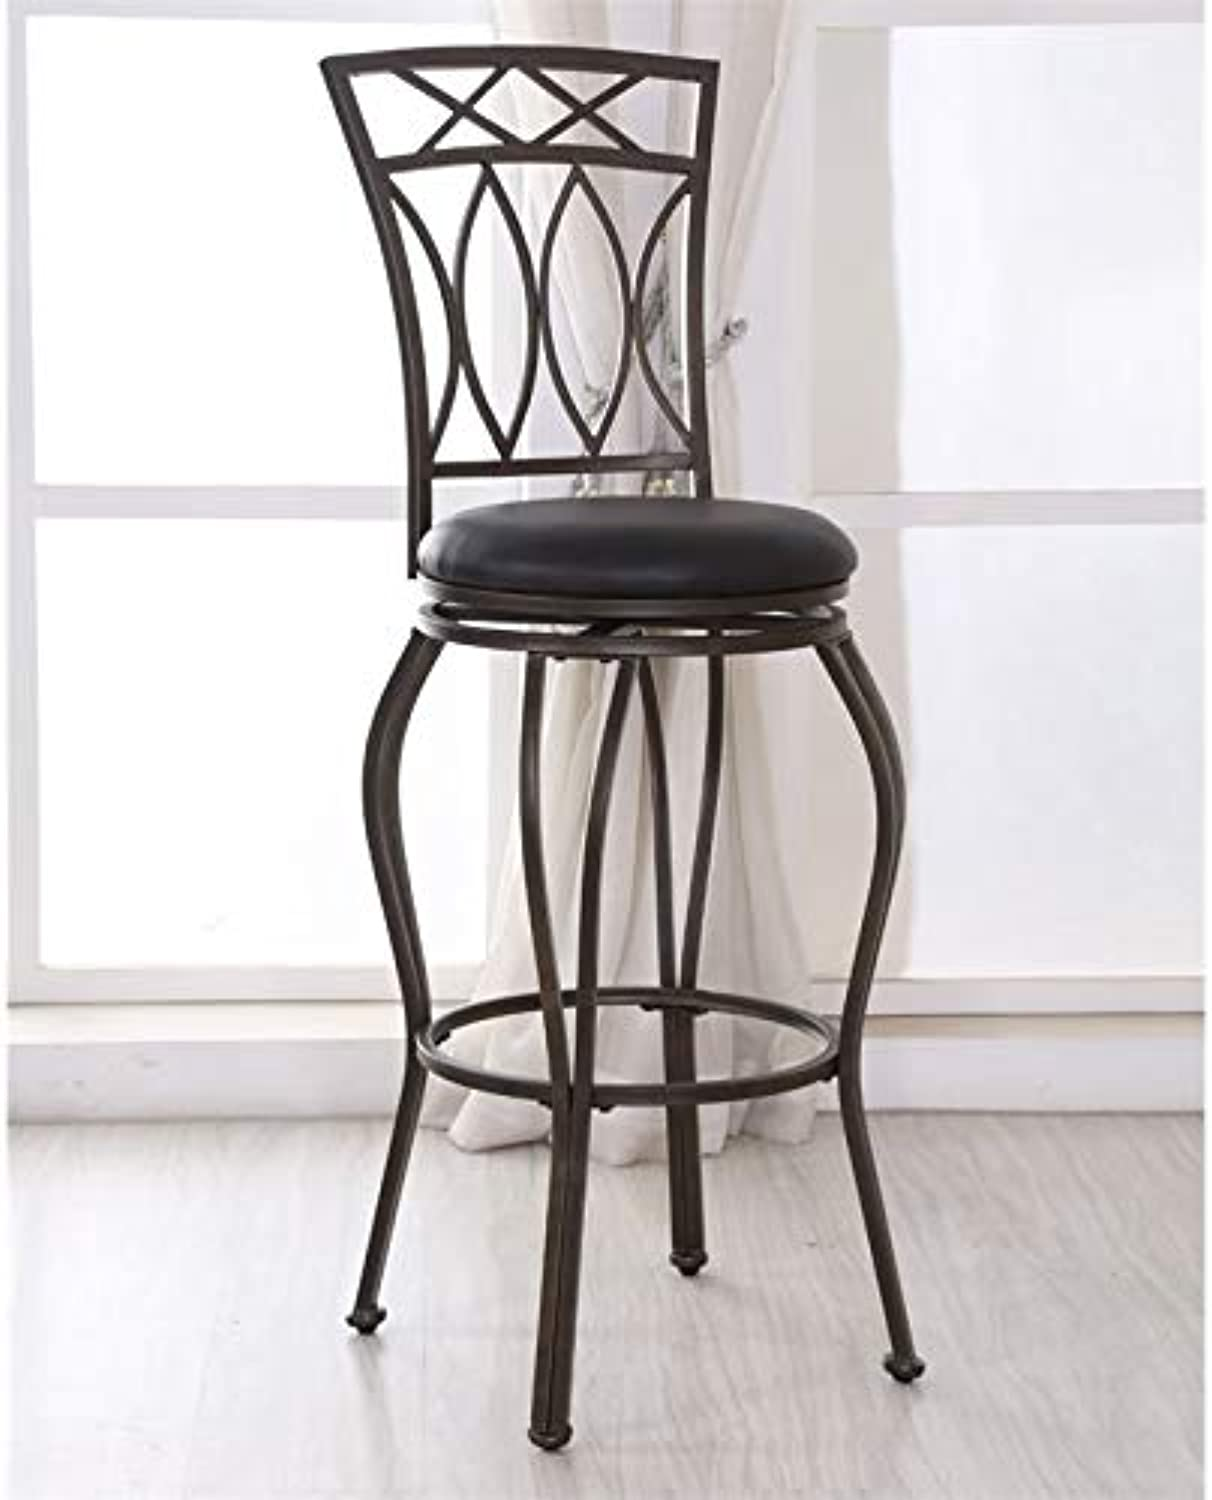 Pemberly Row Faux Leather Swivel Bar Stool in Black